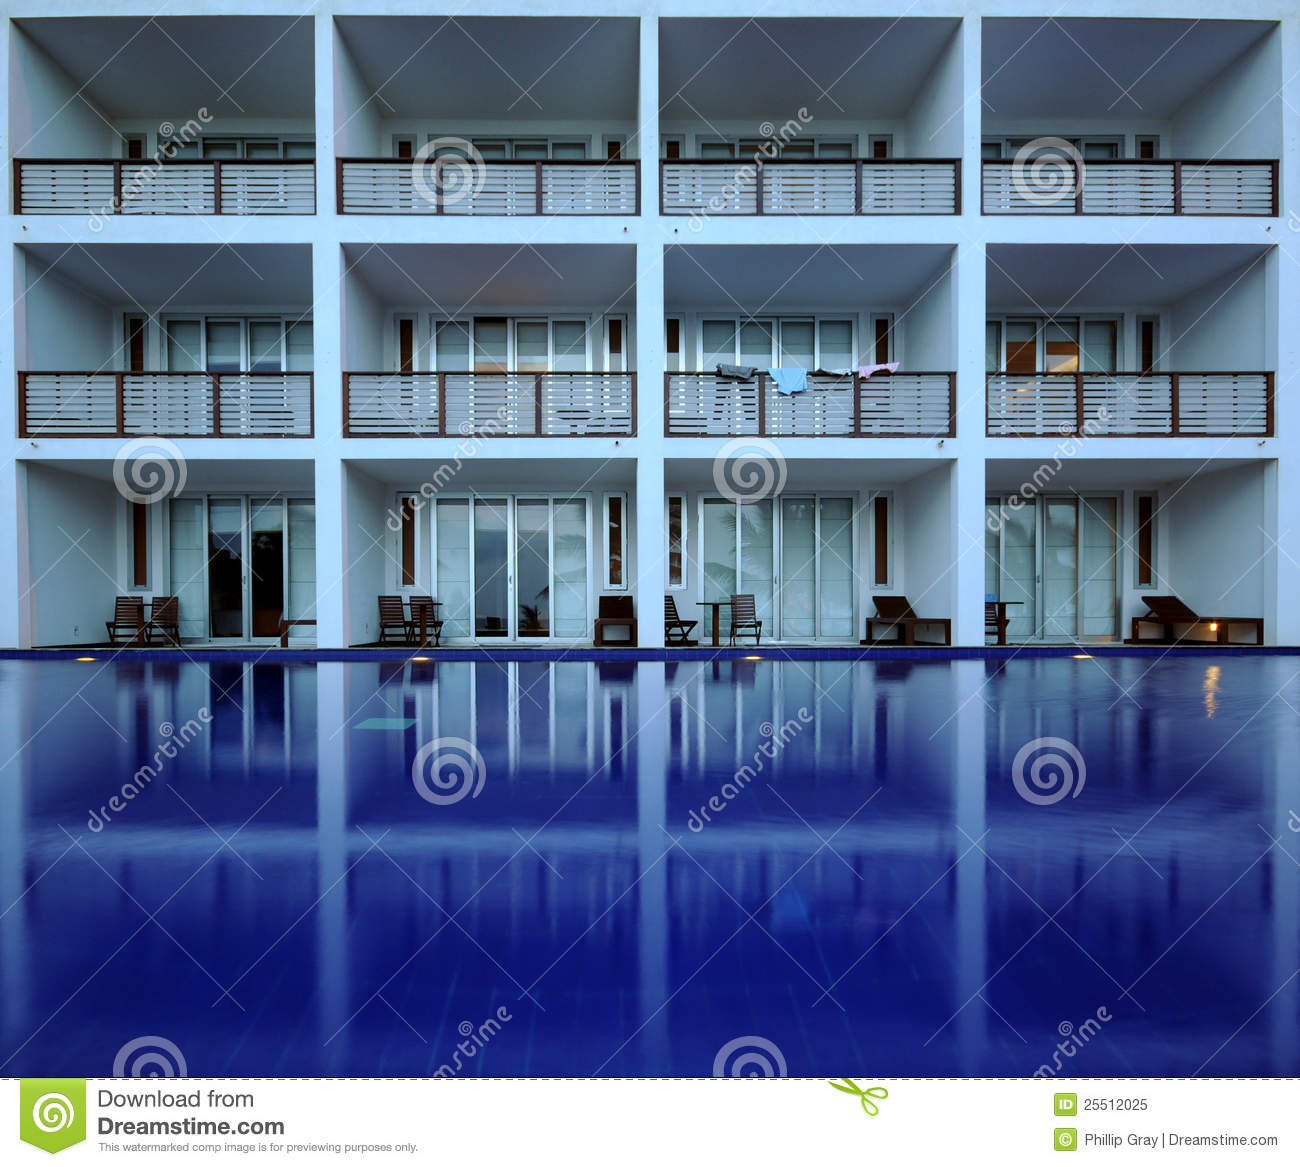 Hotel Pool Balcony Royalty Free Stock Photo Image 25512025